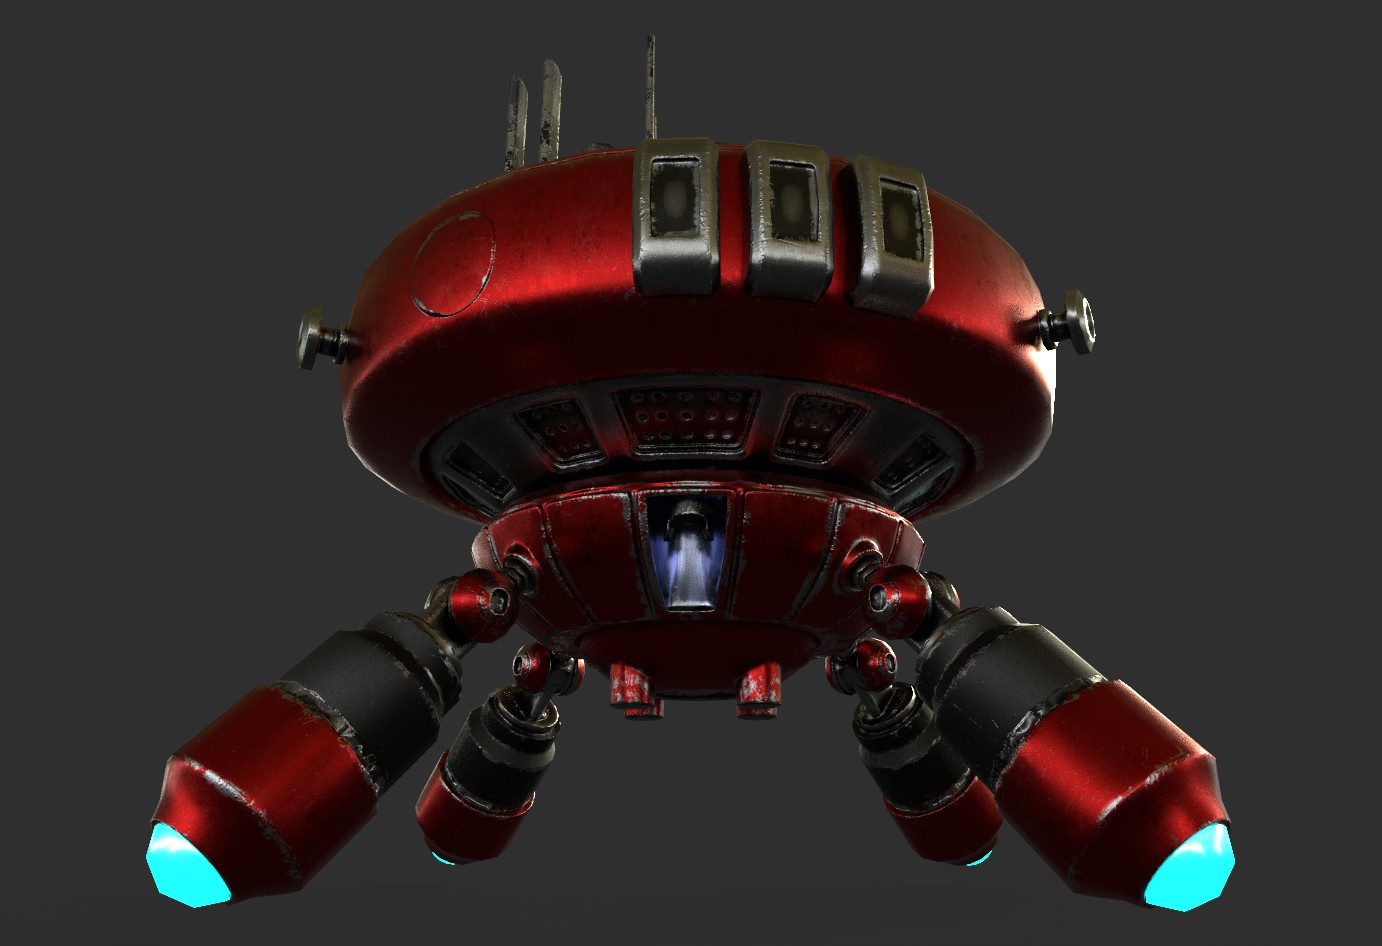 robot boc662 3d model 3ds max 3ds project fbx obj 293434